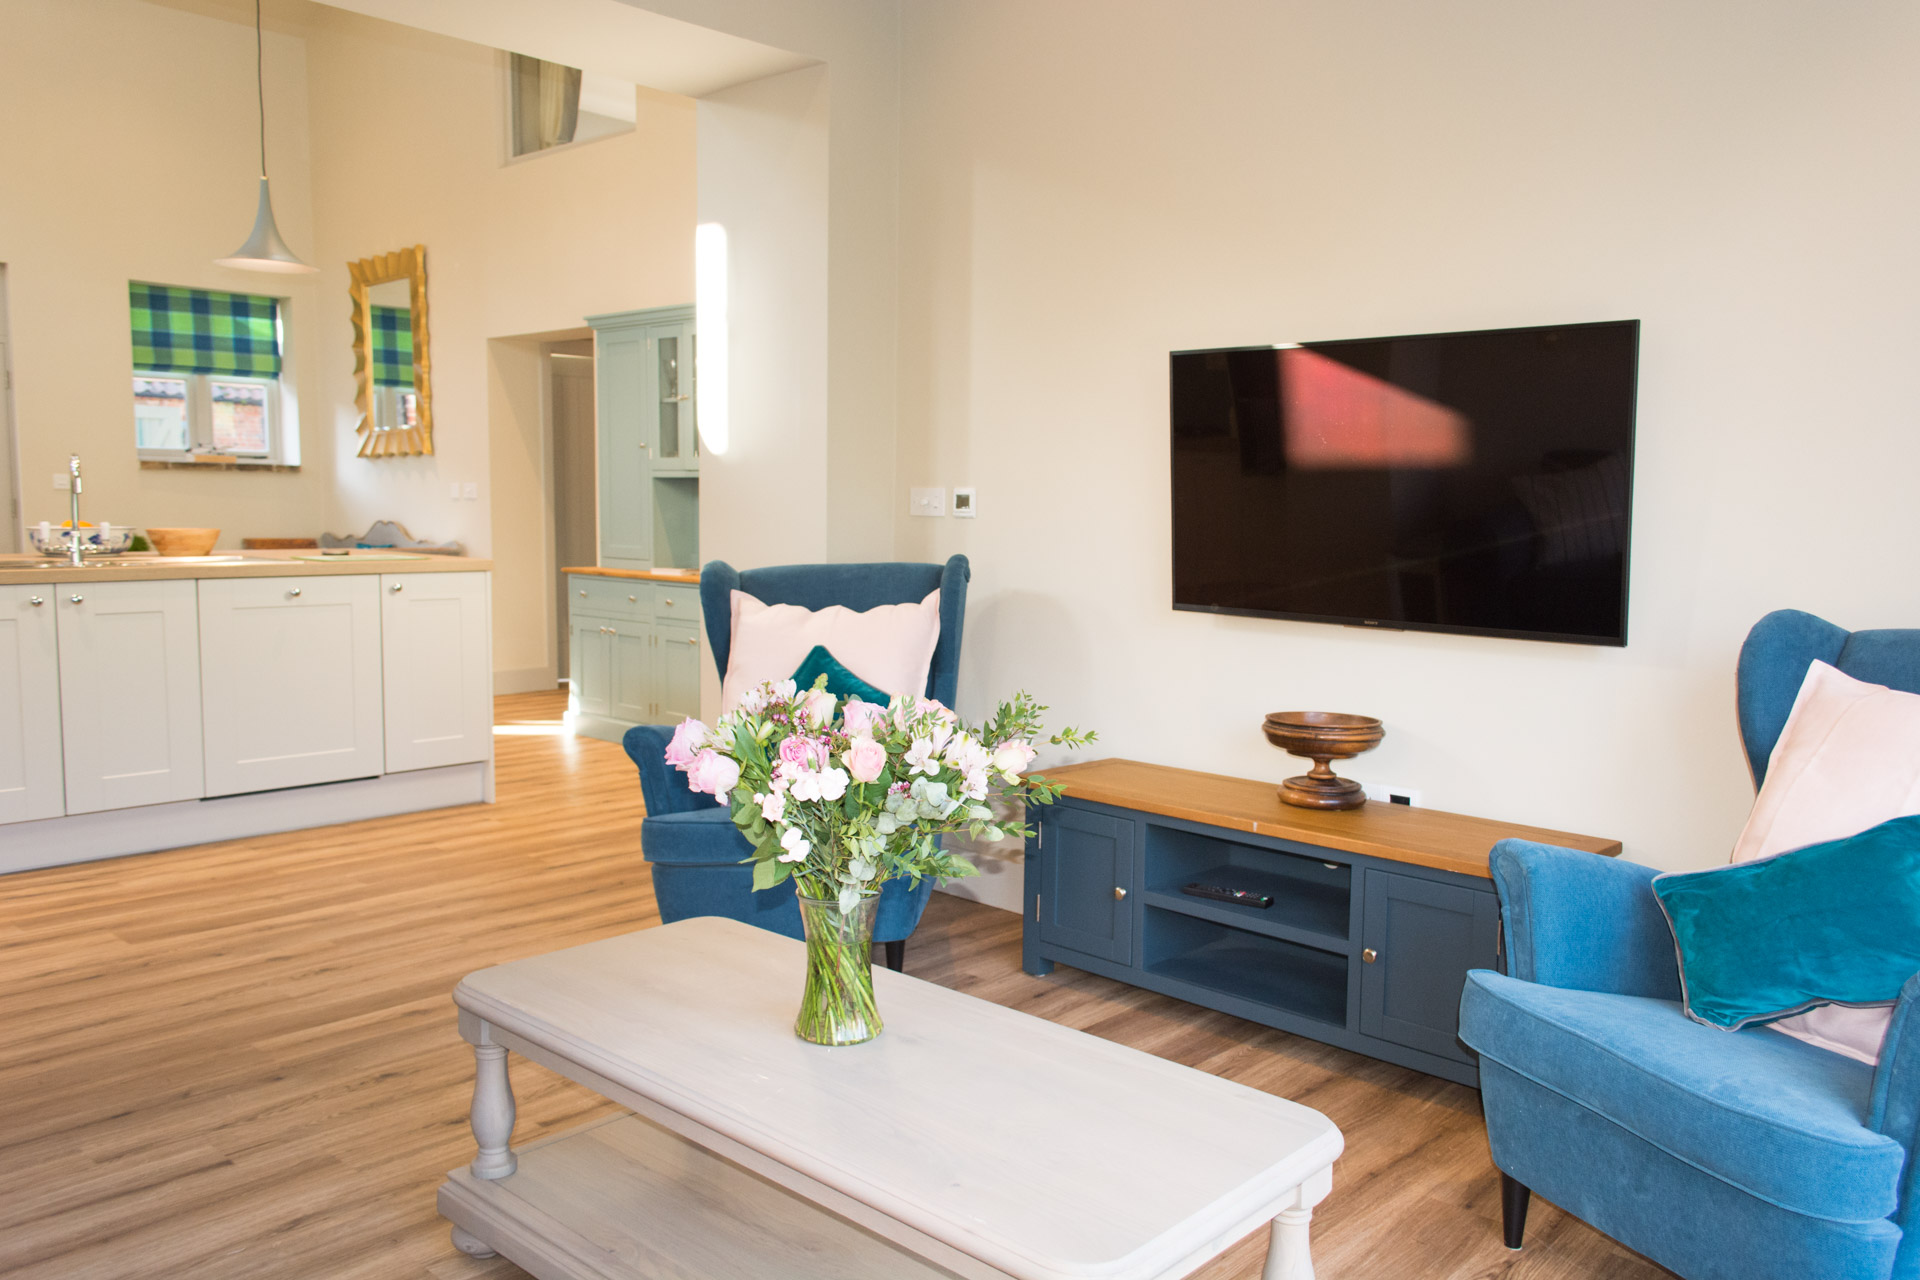 Interior holiday cottage living area showing a TV and blue armchairs.